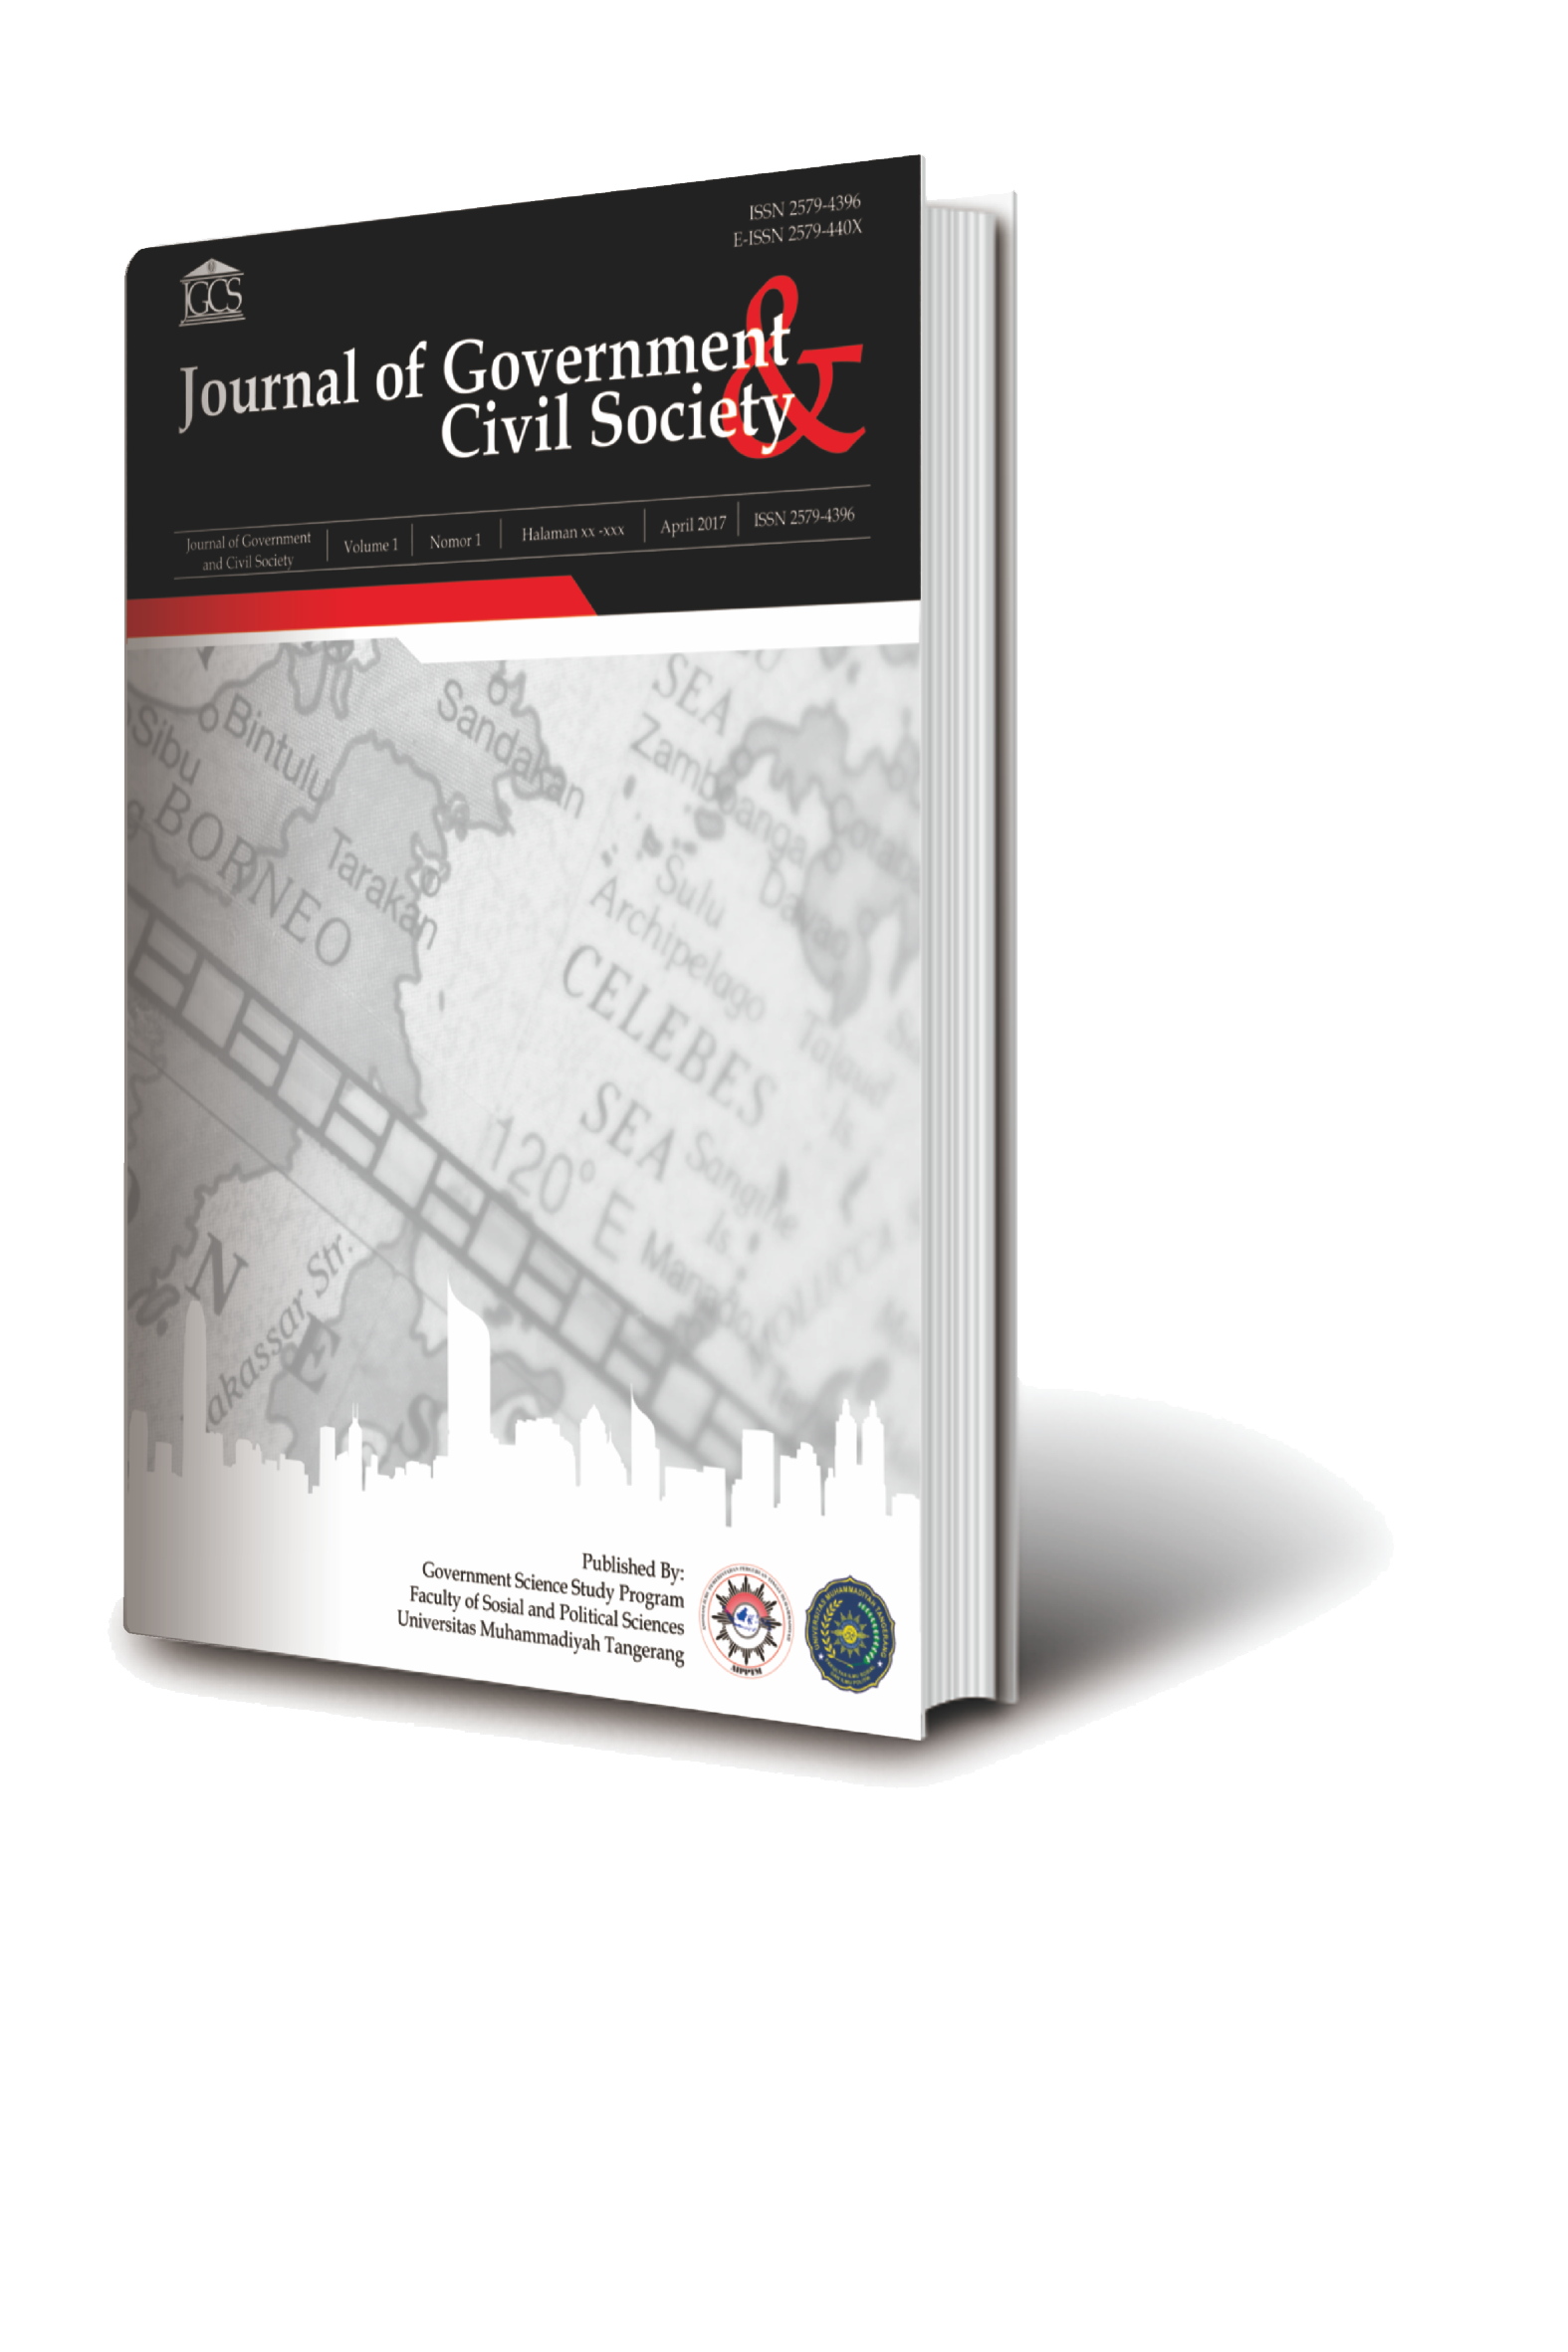 Journal of Government and Civil Society